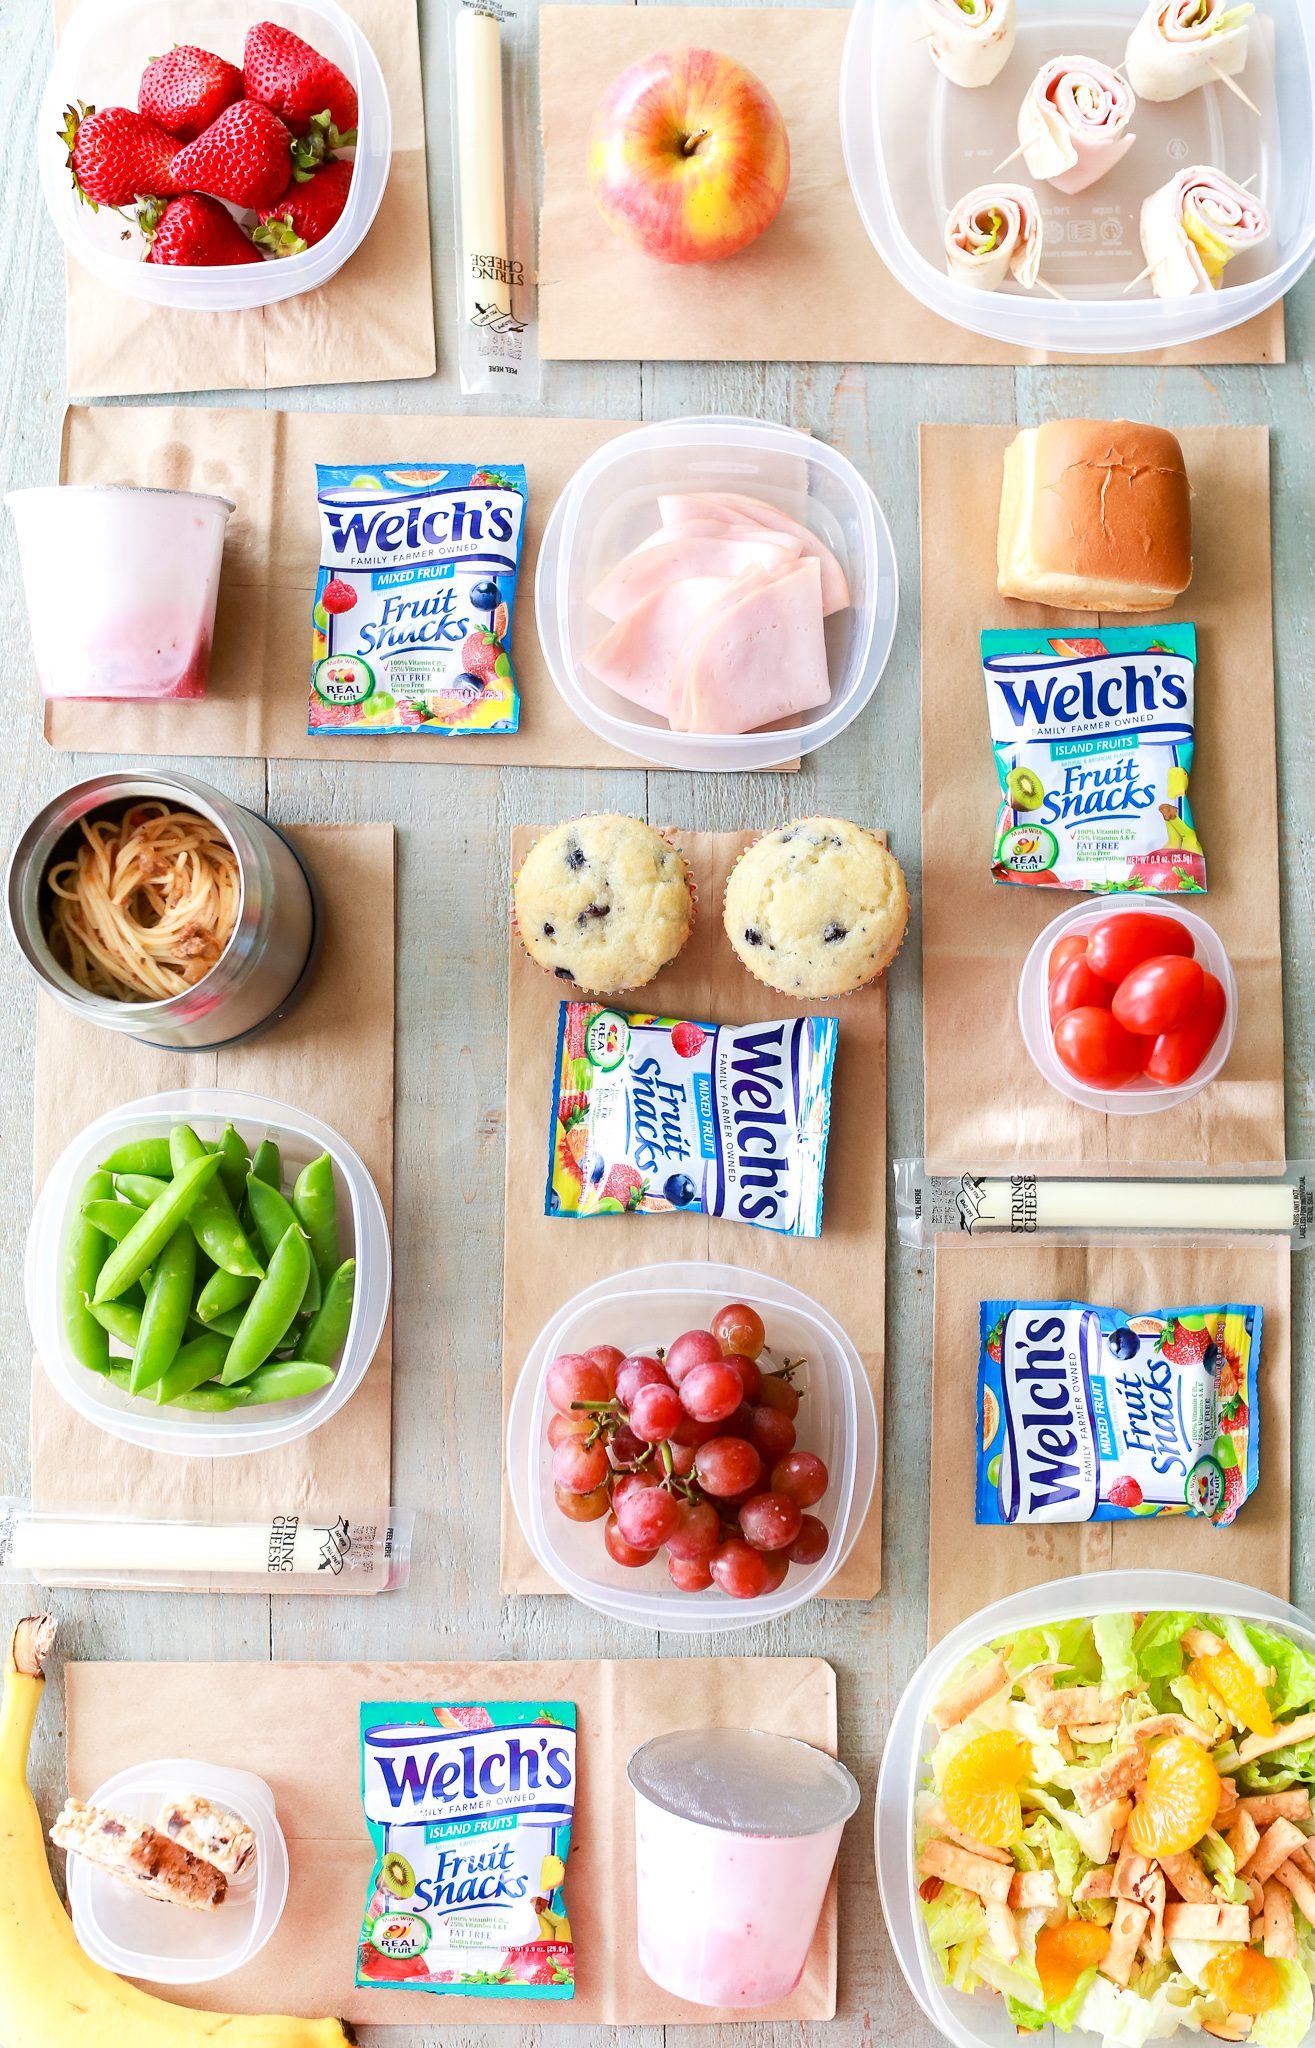 Back to school lunch ideas besides sandwiches!